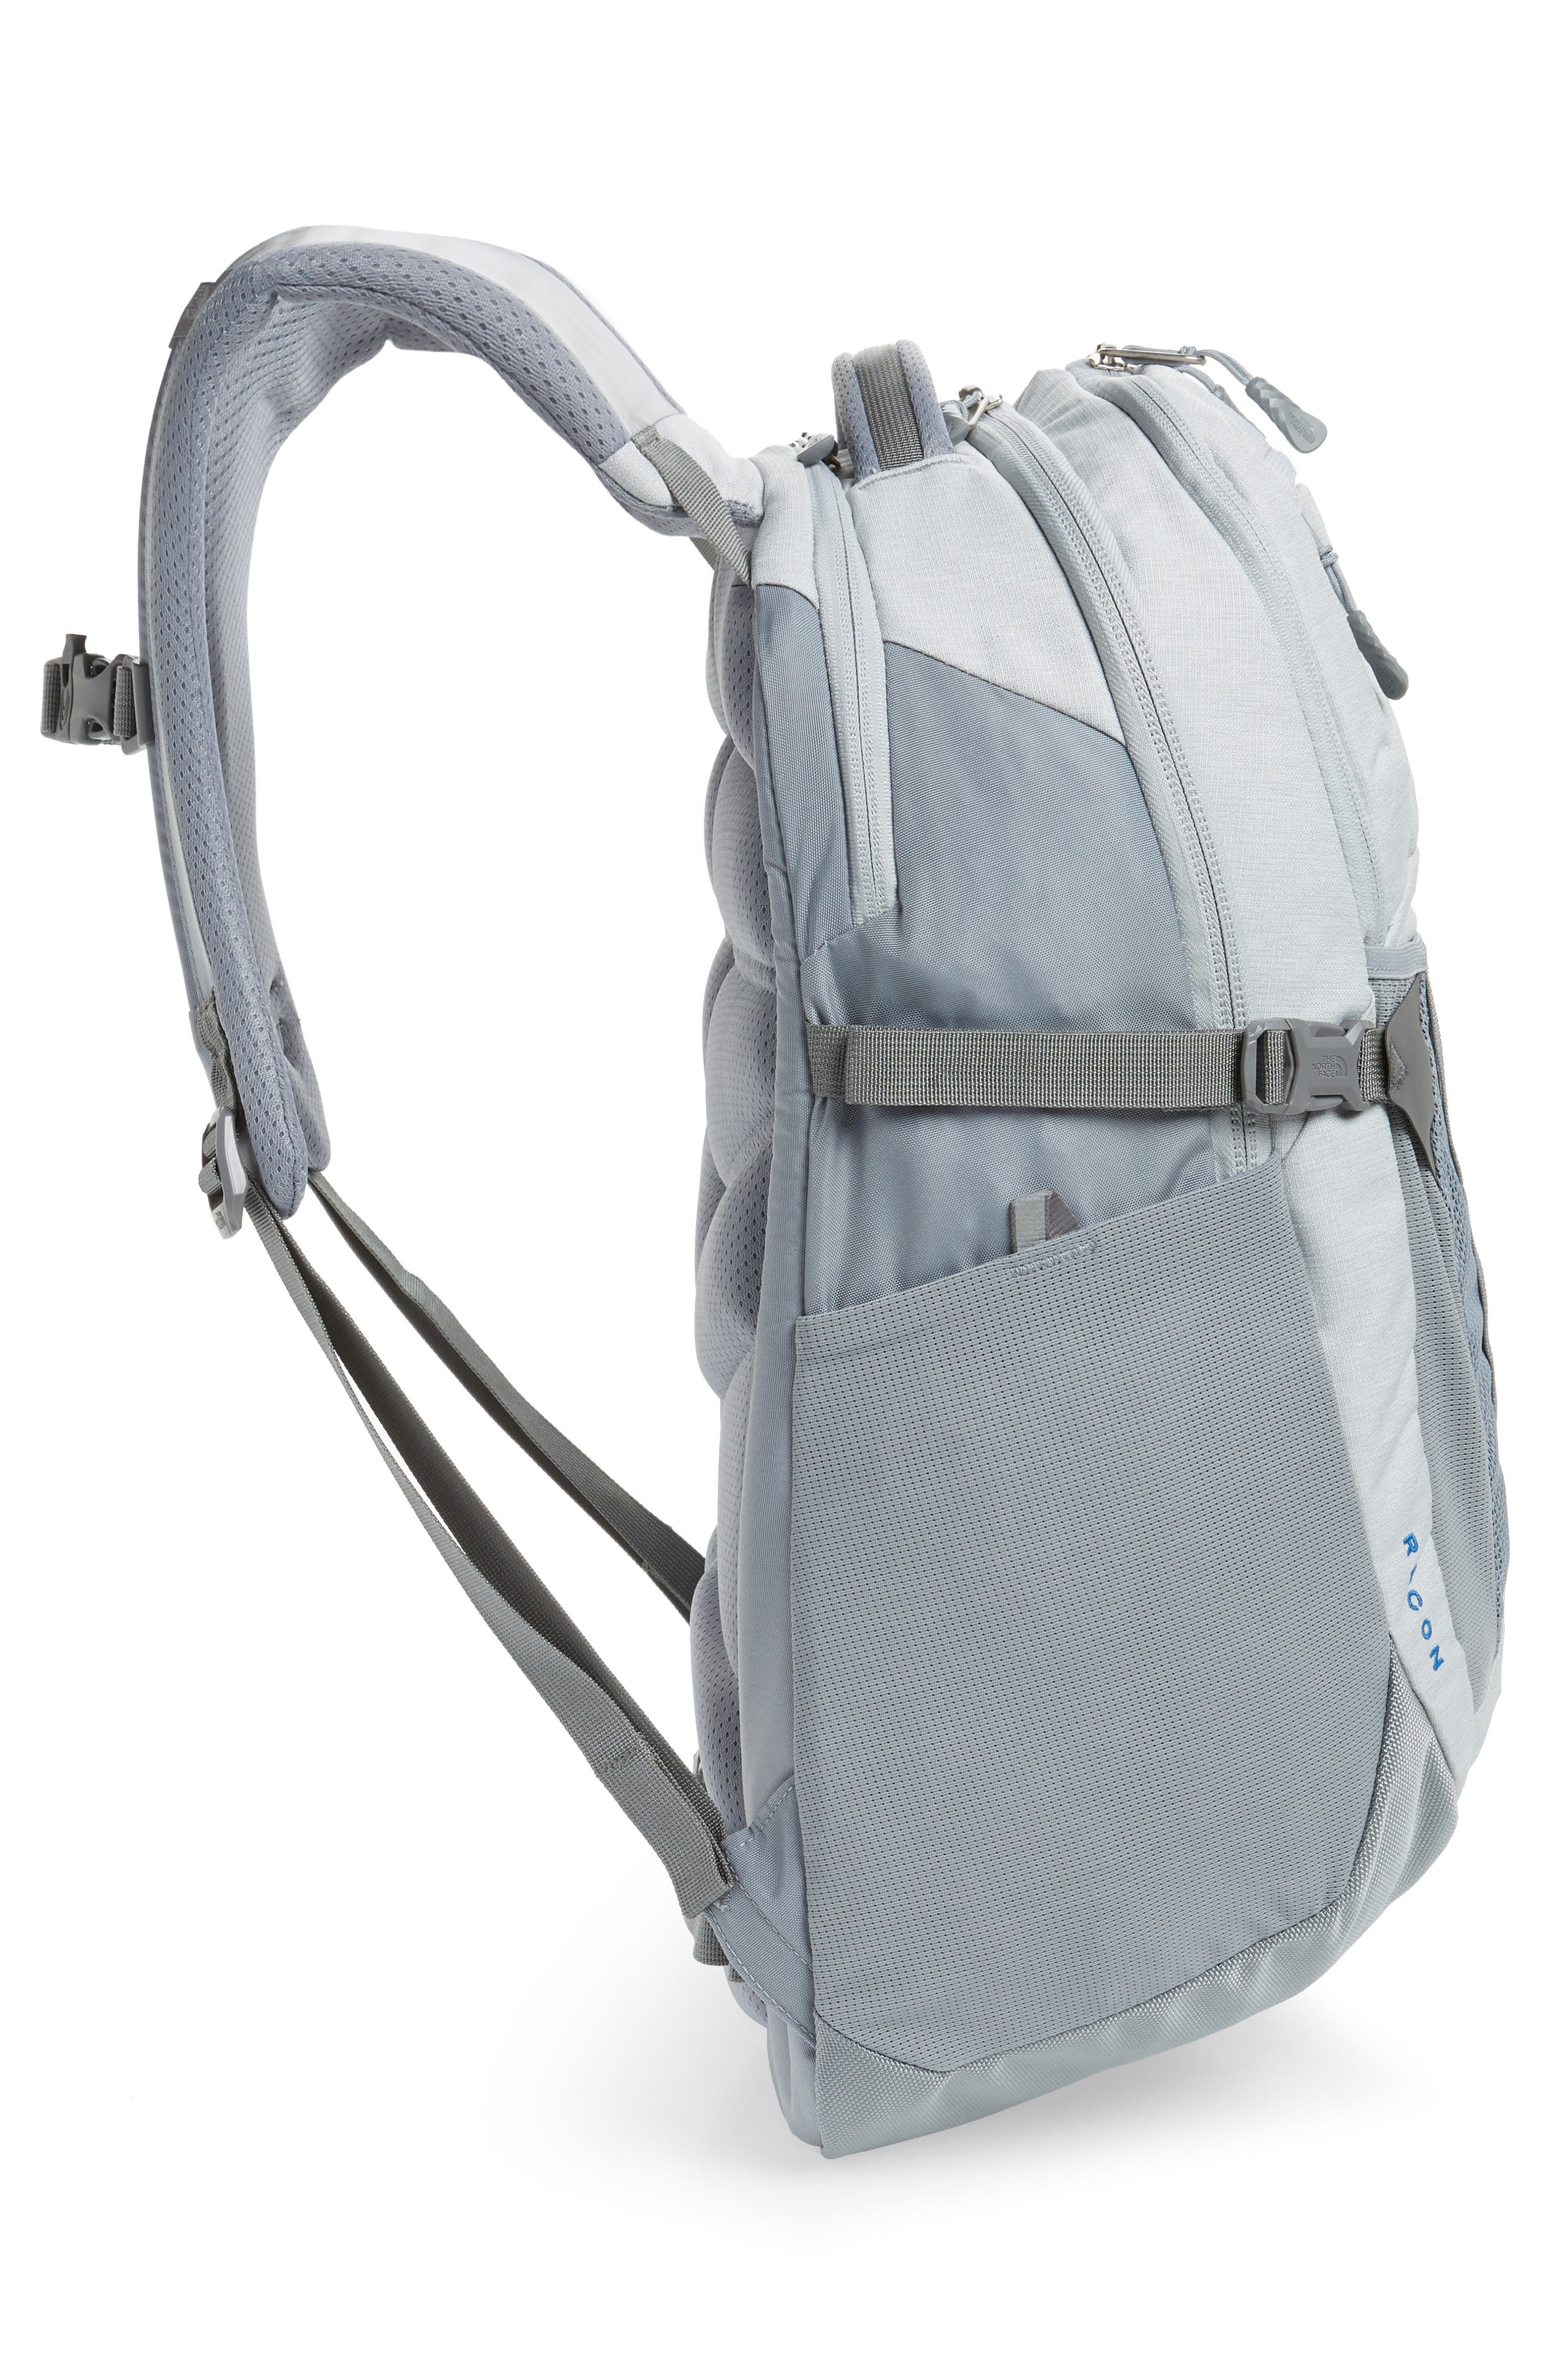 Recon Backpack,                             Alternate thumbnail 5, color,                             HIGH RISE GREY HEATHER/ GREY